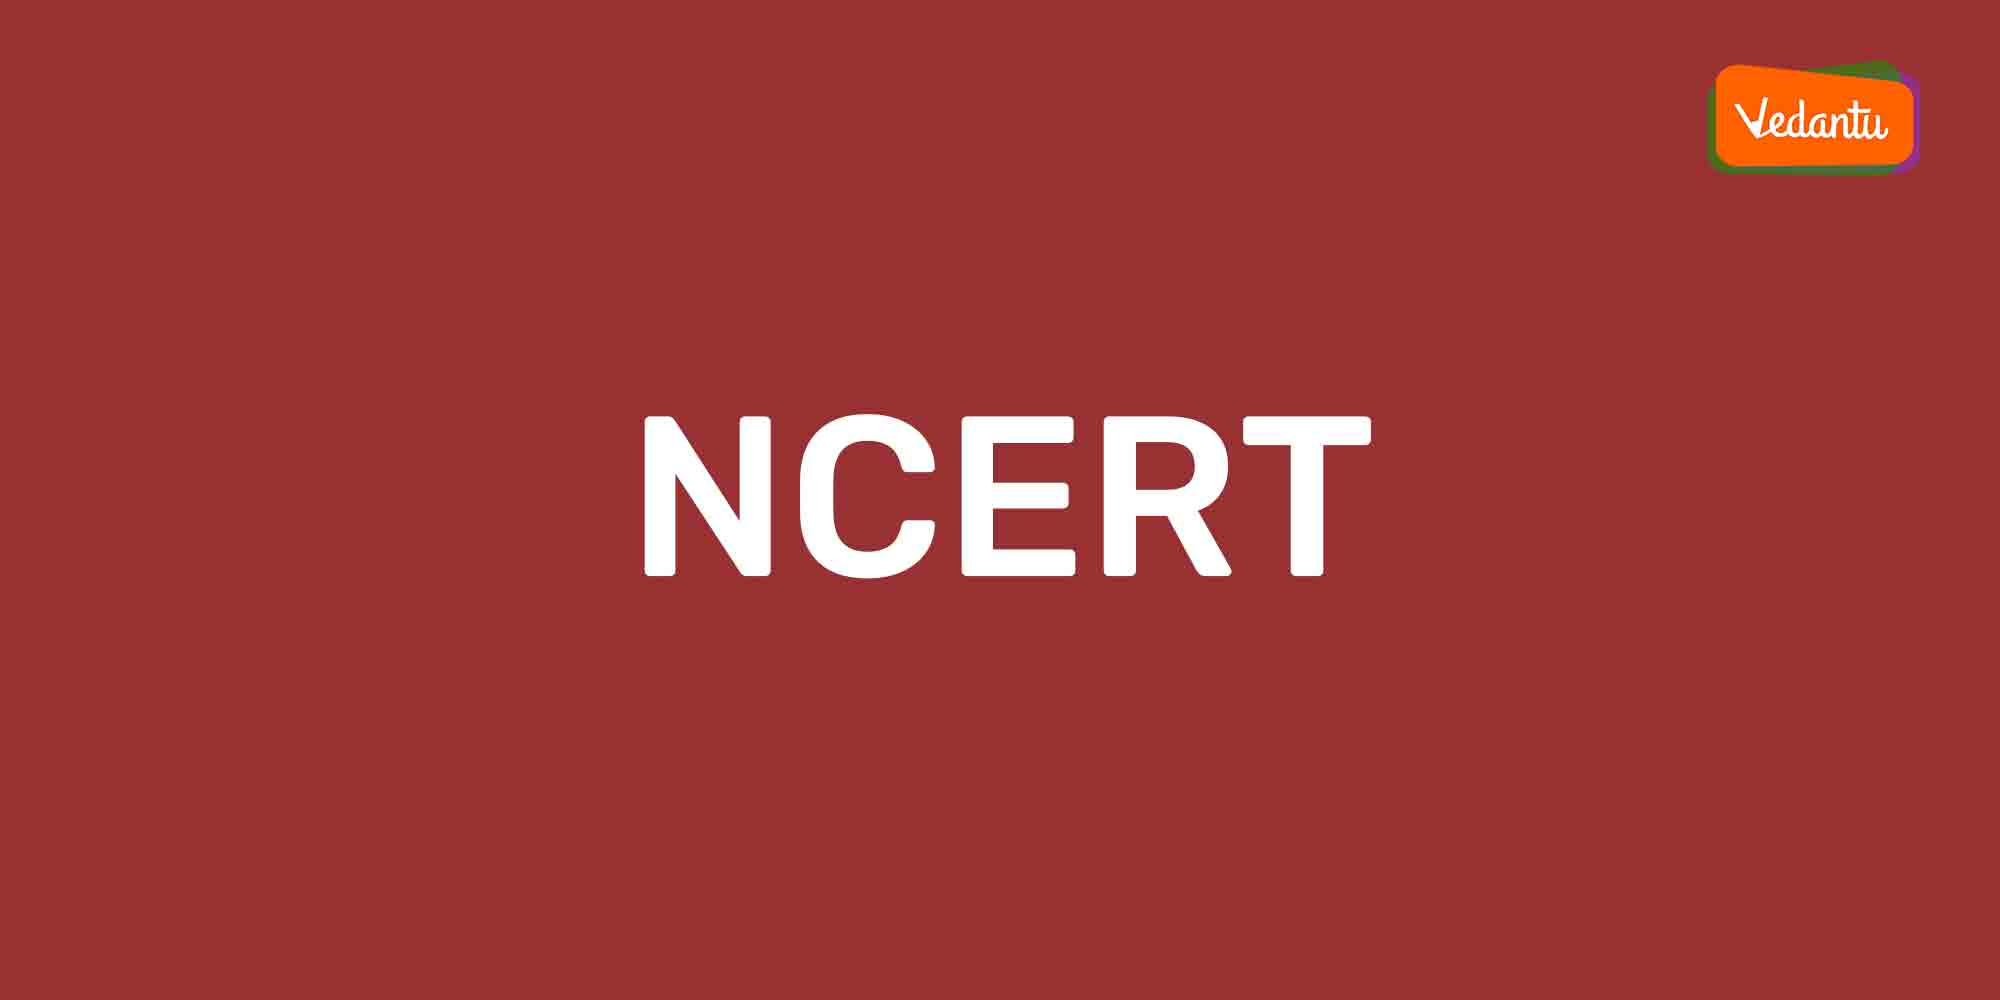 Find out How NCERT Physics and Chemistry Books and Solutions Help in NEET